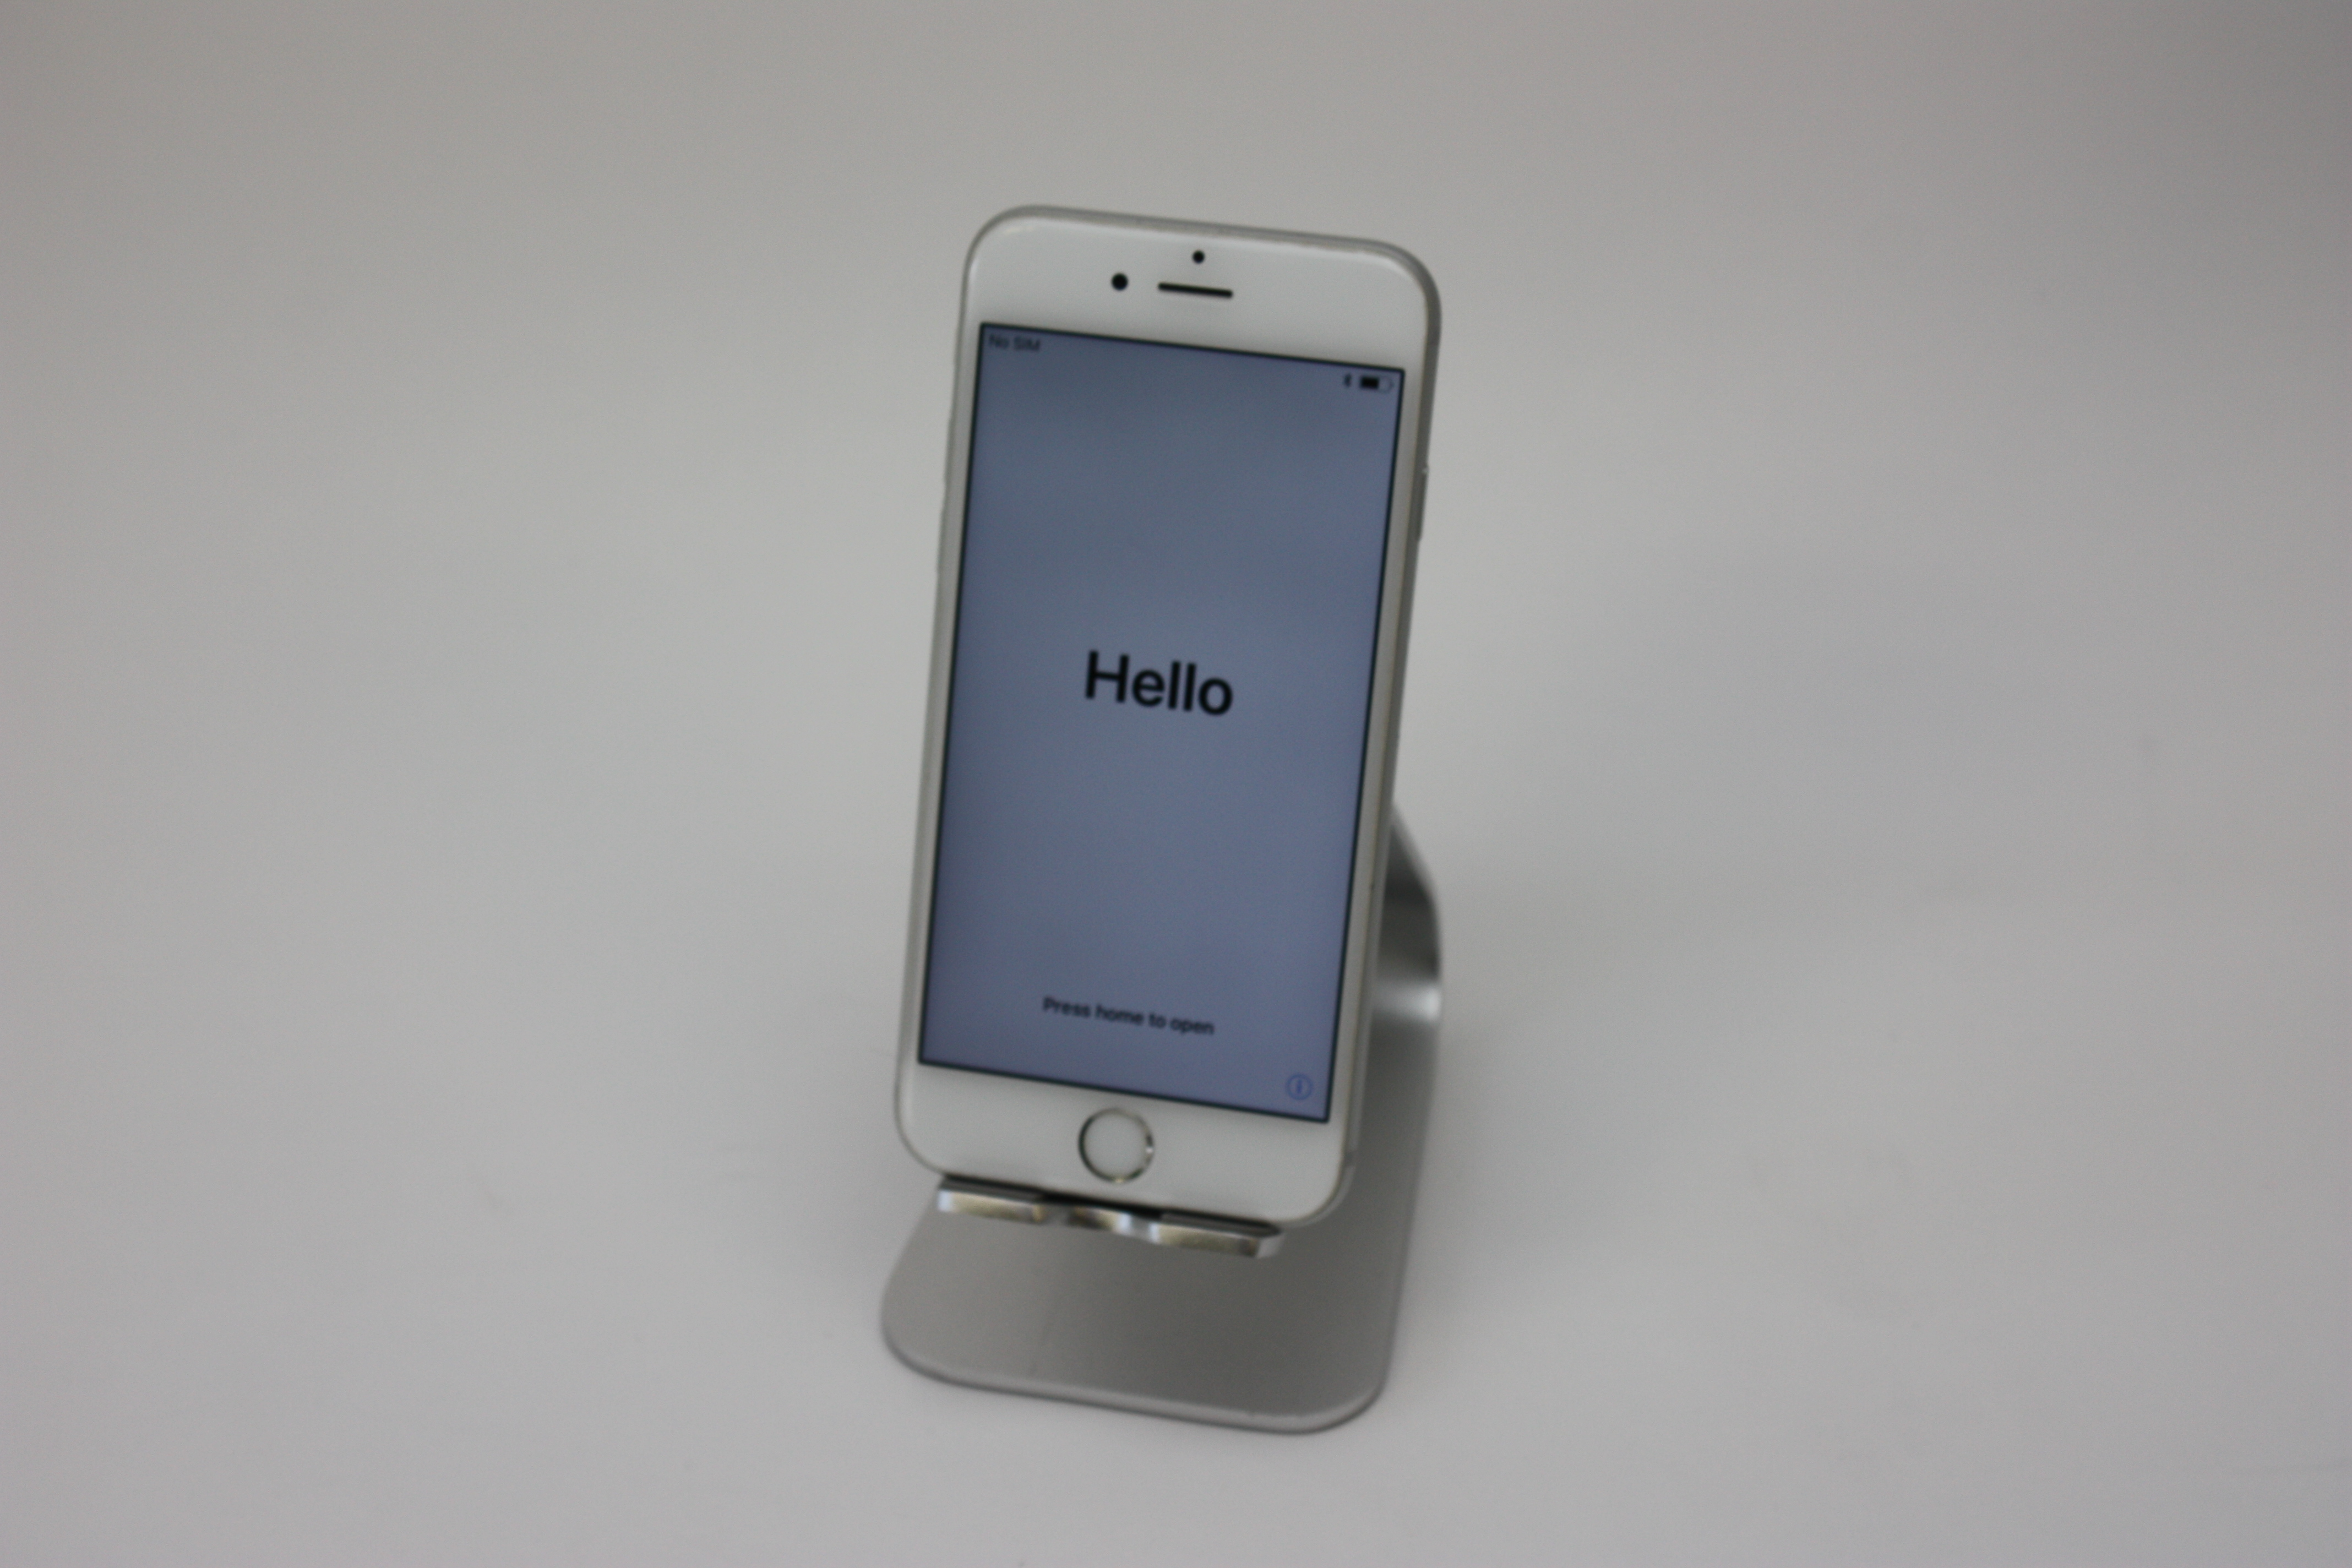 iPhone 6S, 16 GB, Silver, image 1